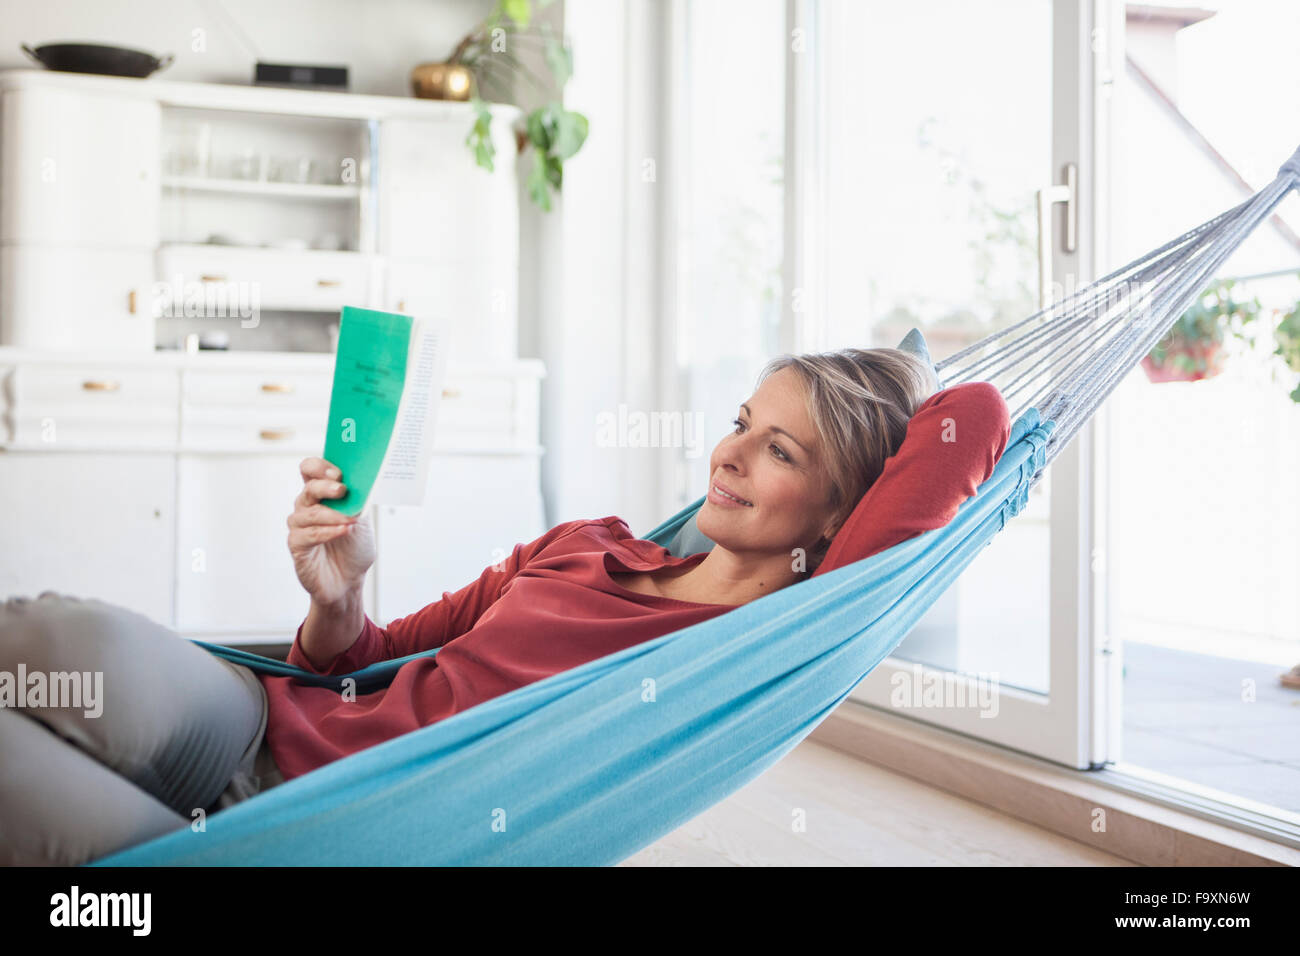 Smiling woman at home lying in hammock reading book - Stock Image